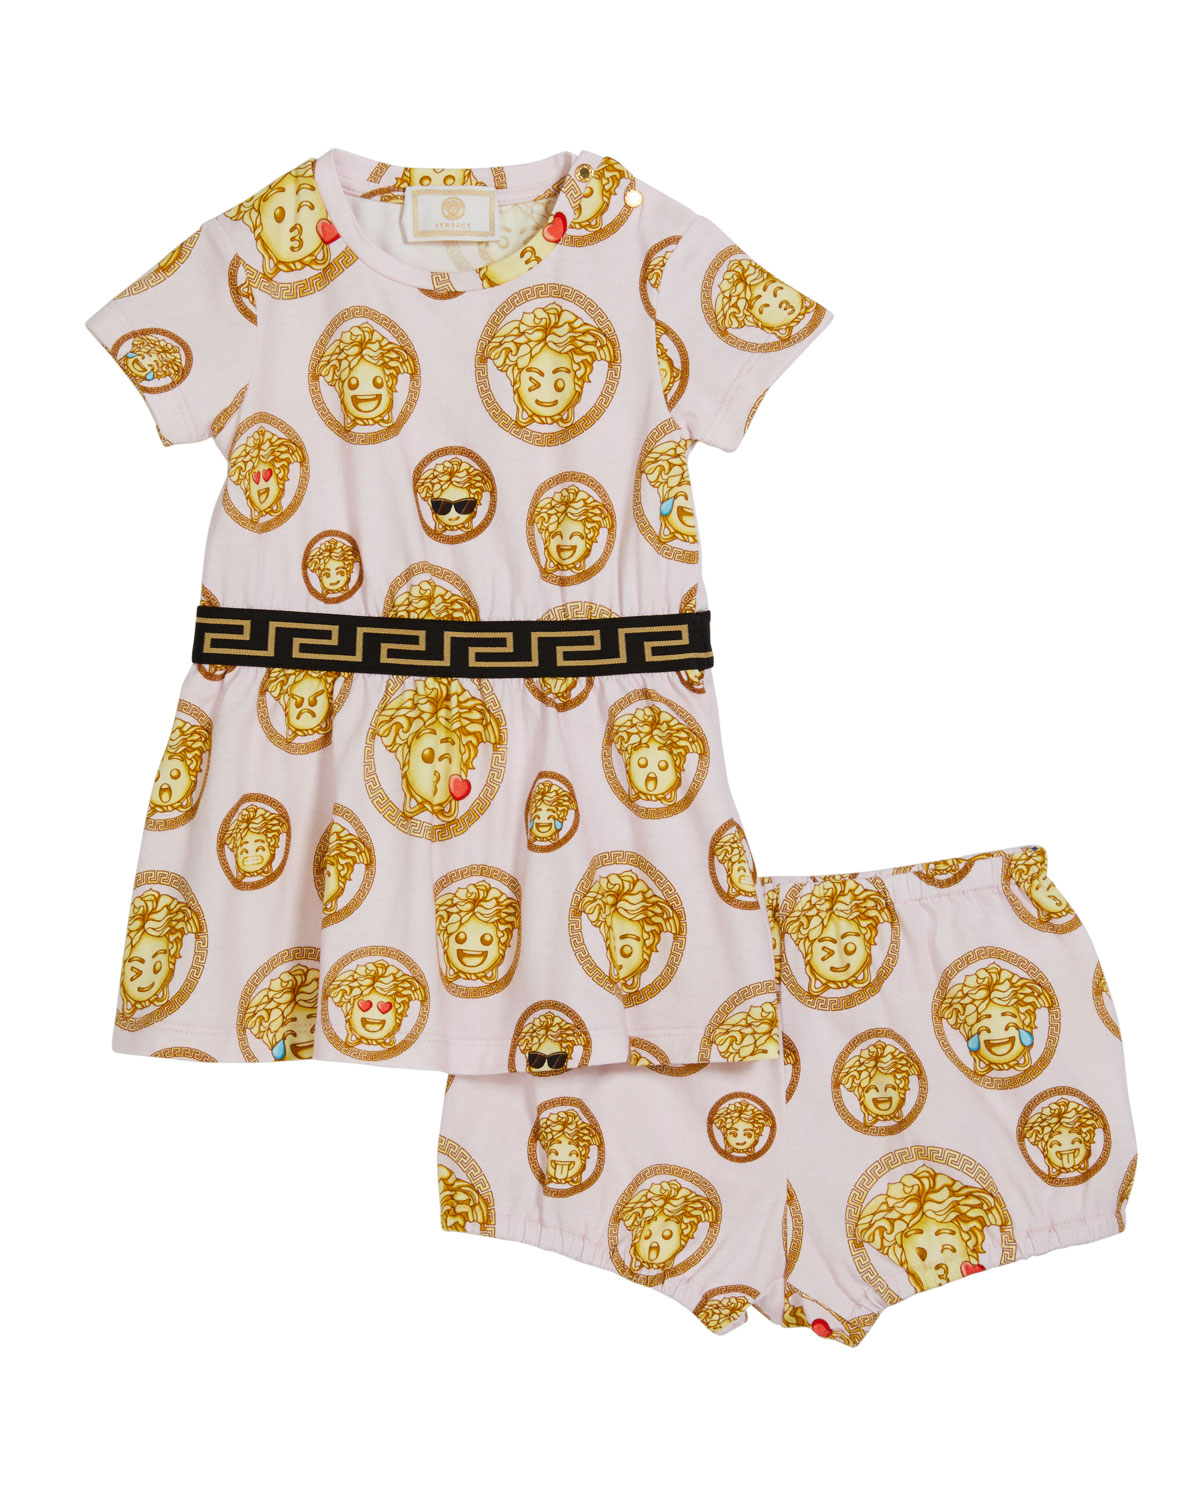 Versace Dresses GIRL'S MEDUSA EMOJI SHORT-SLEEVE DRESS W/ BLOOMERS